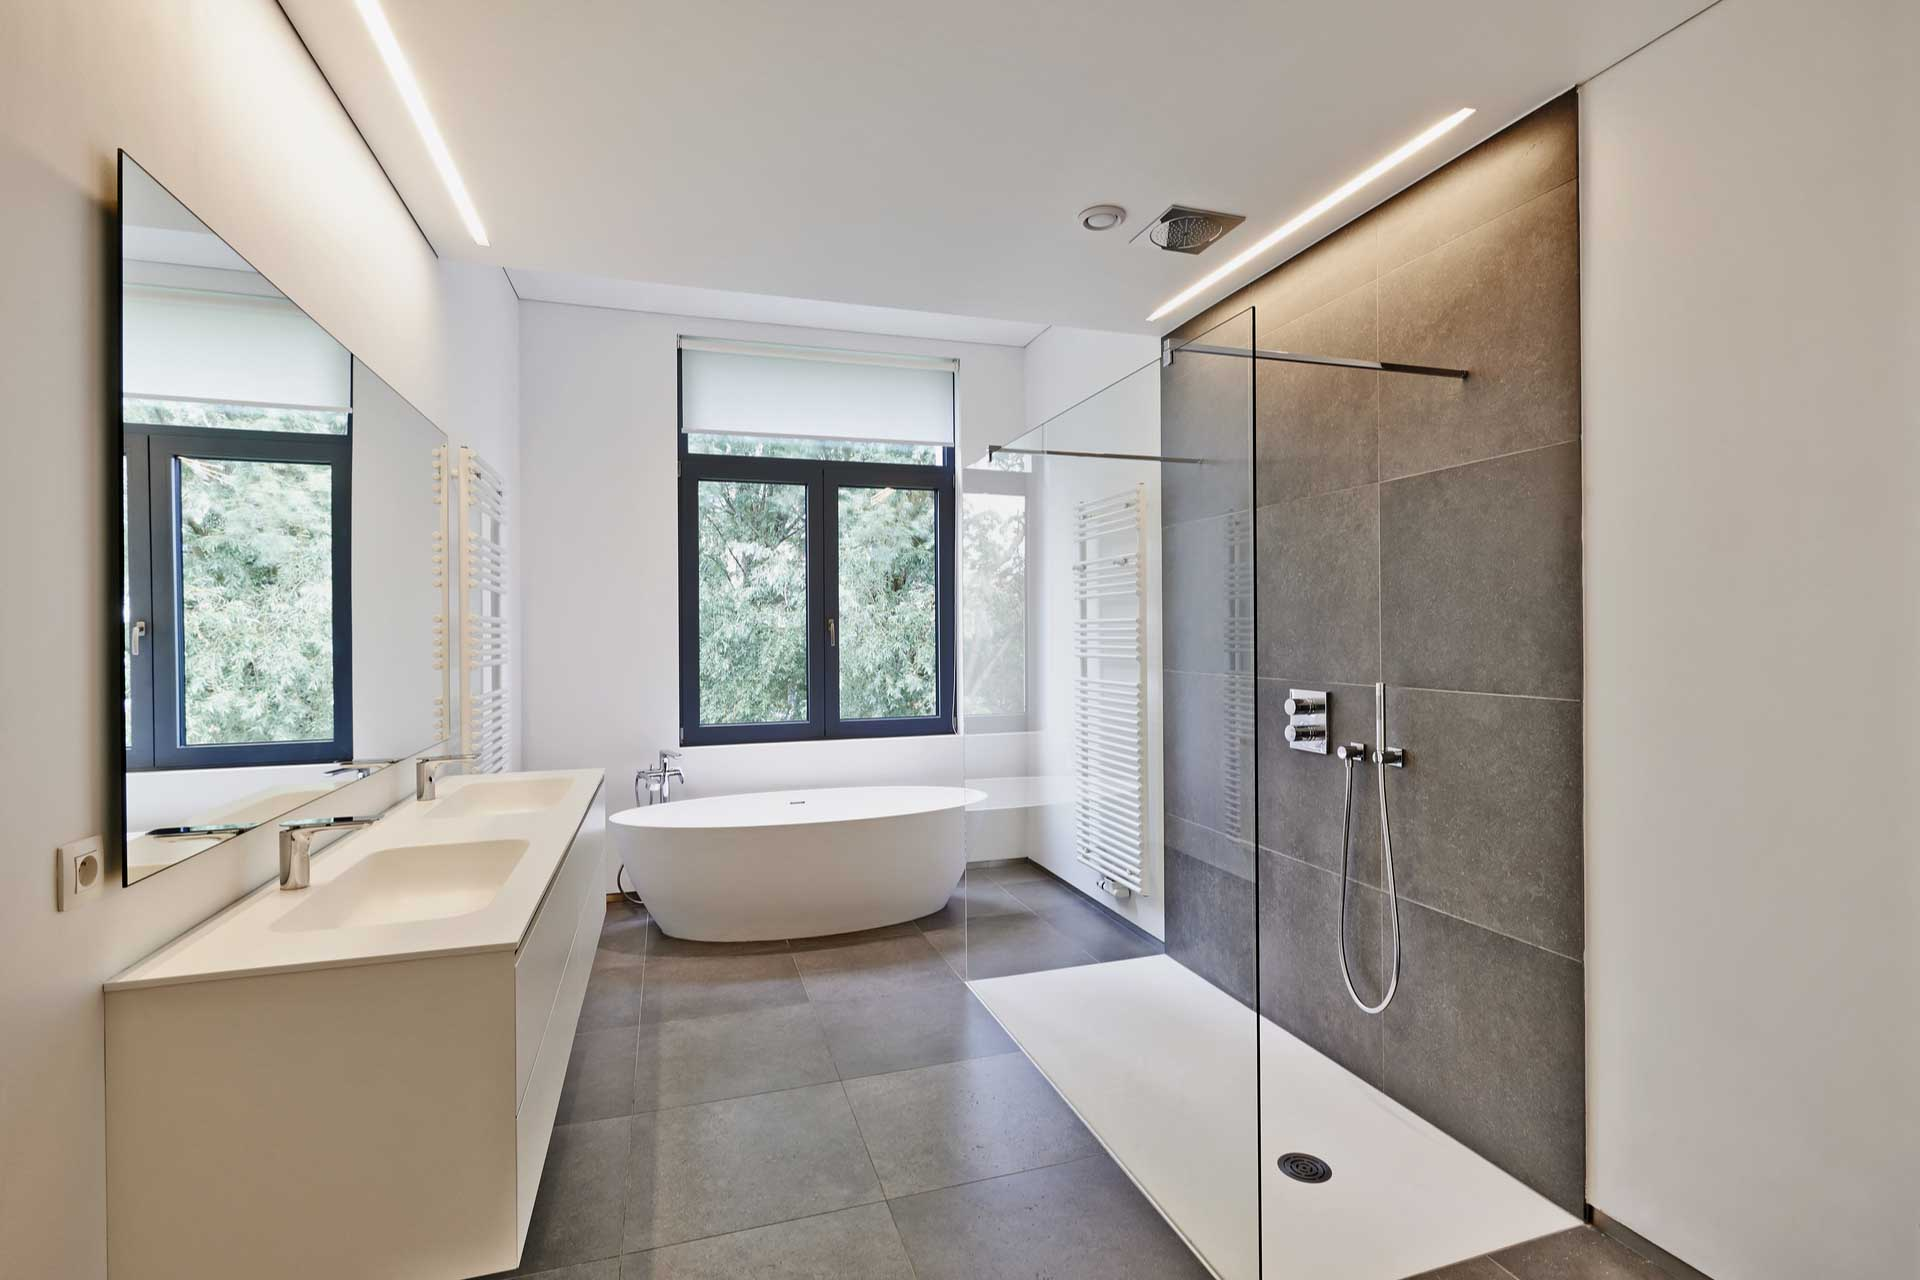 stock-photo-interior-of-fancy-bathroom-in-black-color-with-shiny-metal-freestanding-bath-near-wide-window-664737463